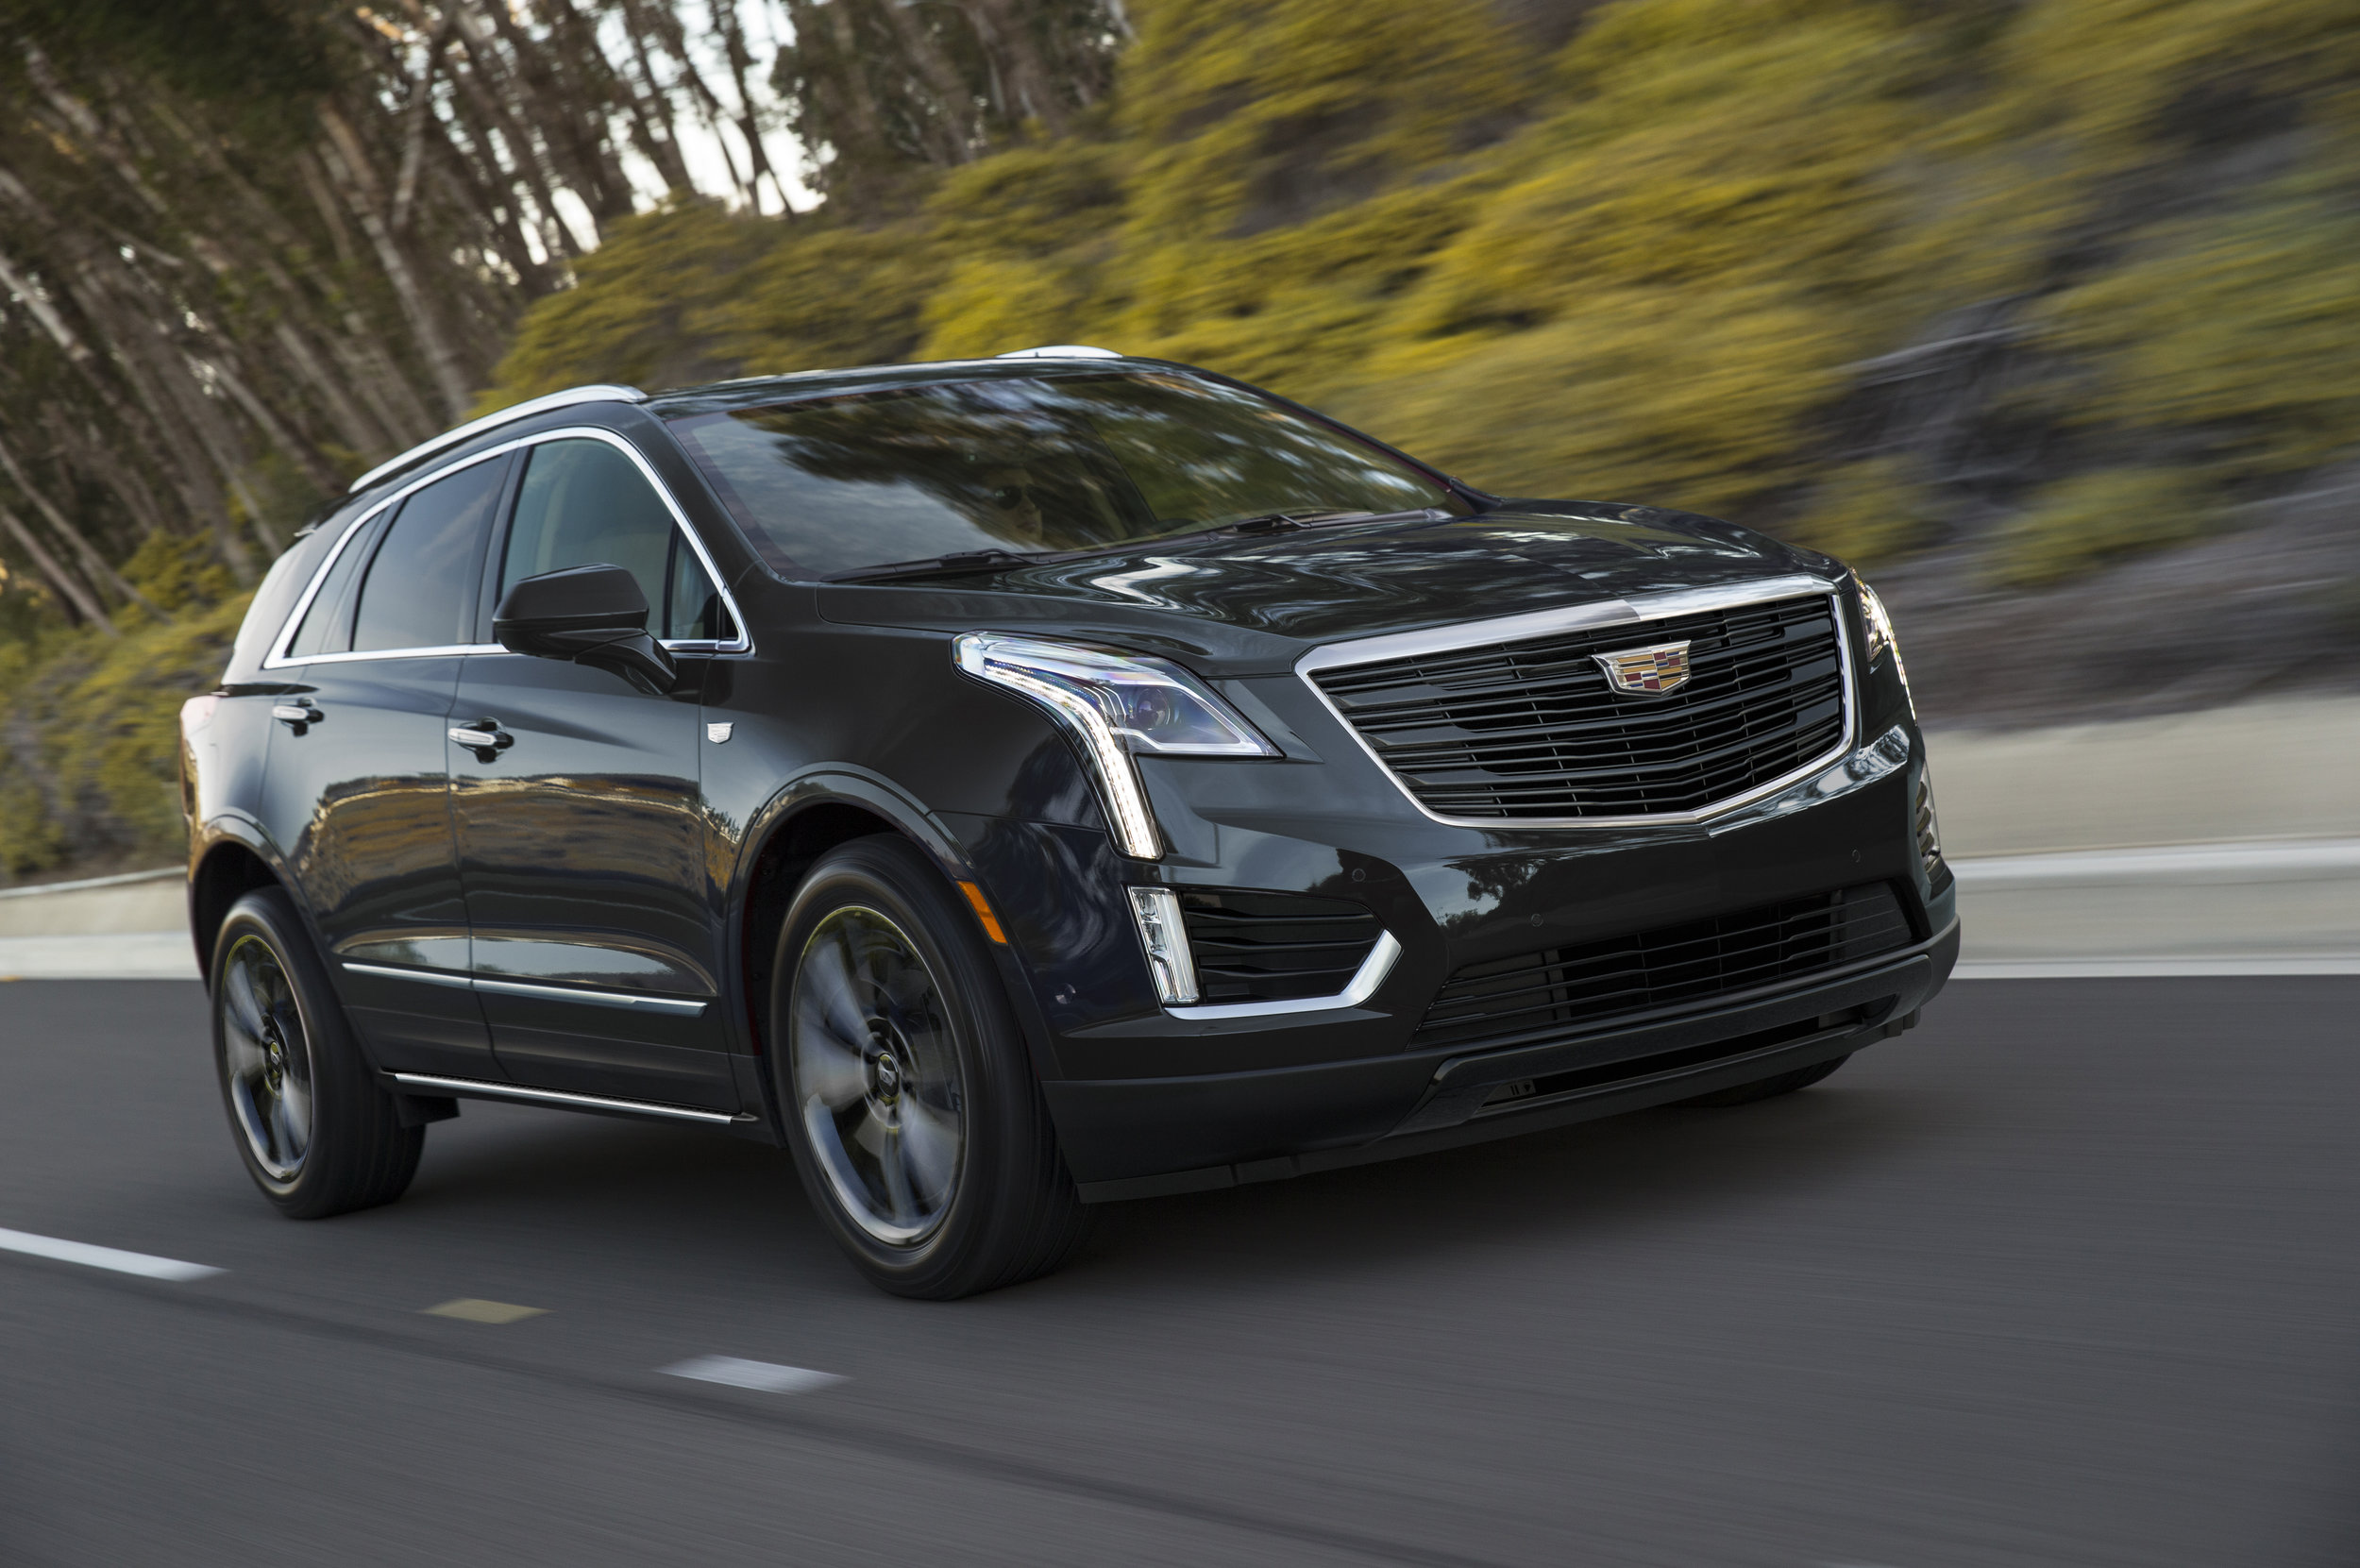 The 2019 Cadillac XT5 Sport package is infused with darkened ext